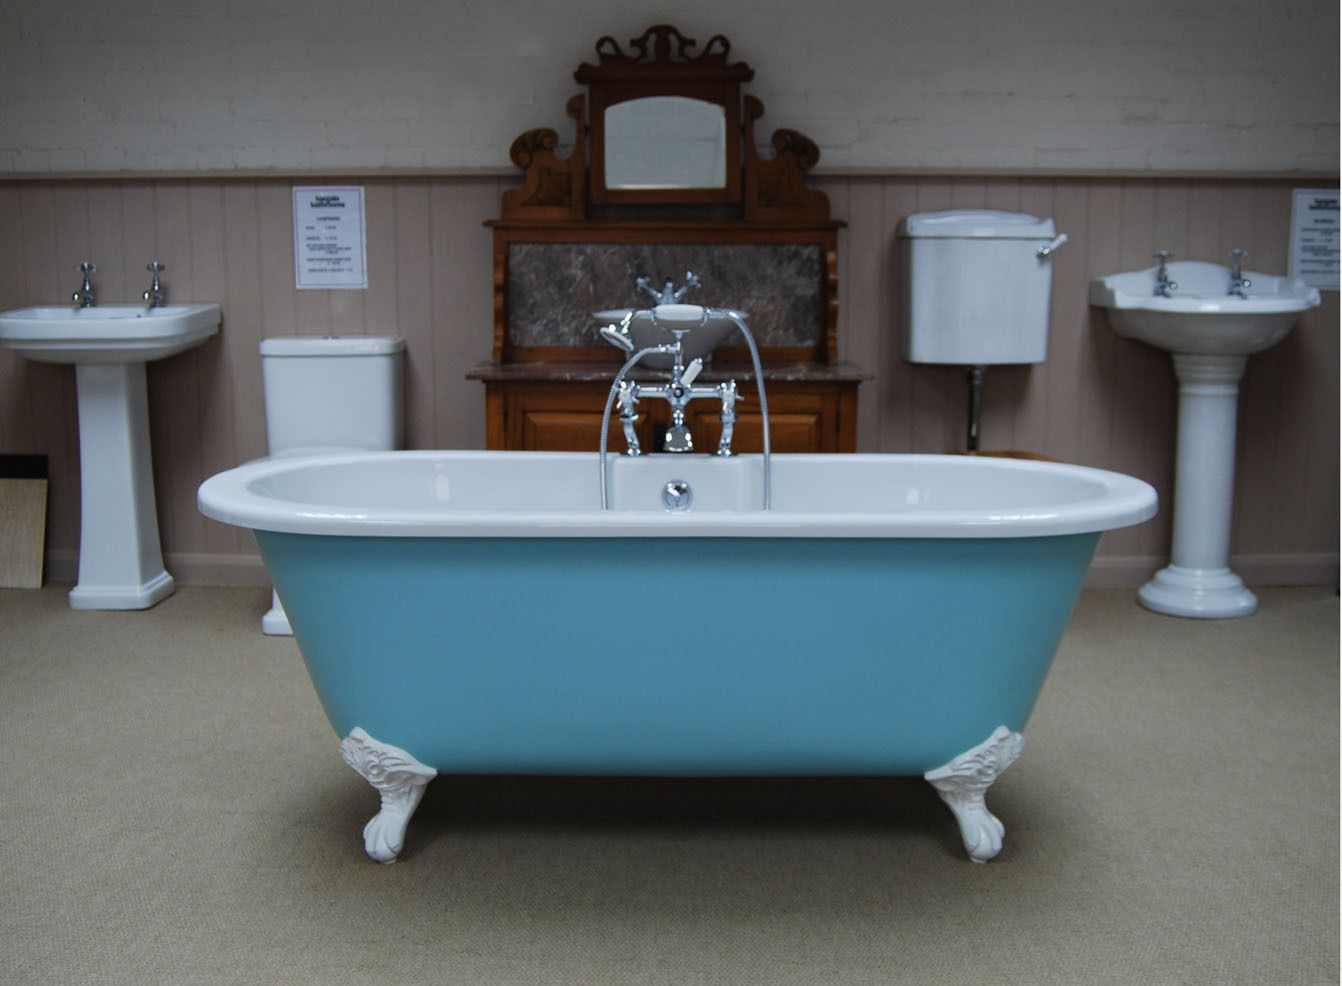 BEAUTIFUL RESIN STONE ROLL TOP BATH PAINTED IN VINTAGE BLUE FARROW ...